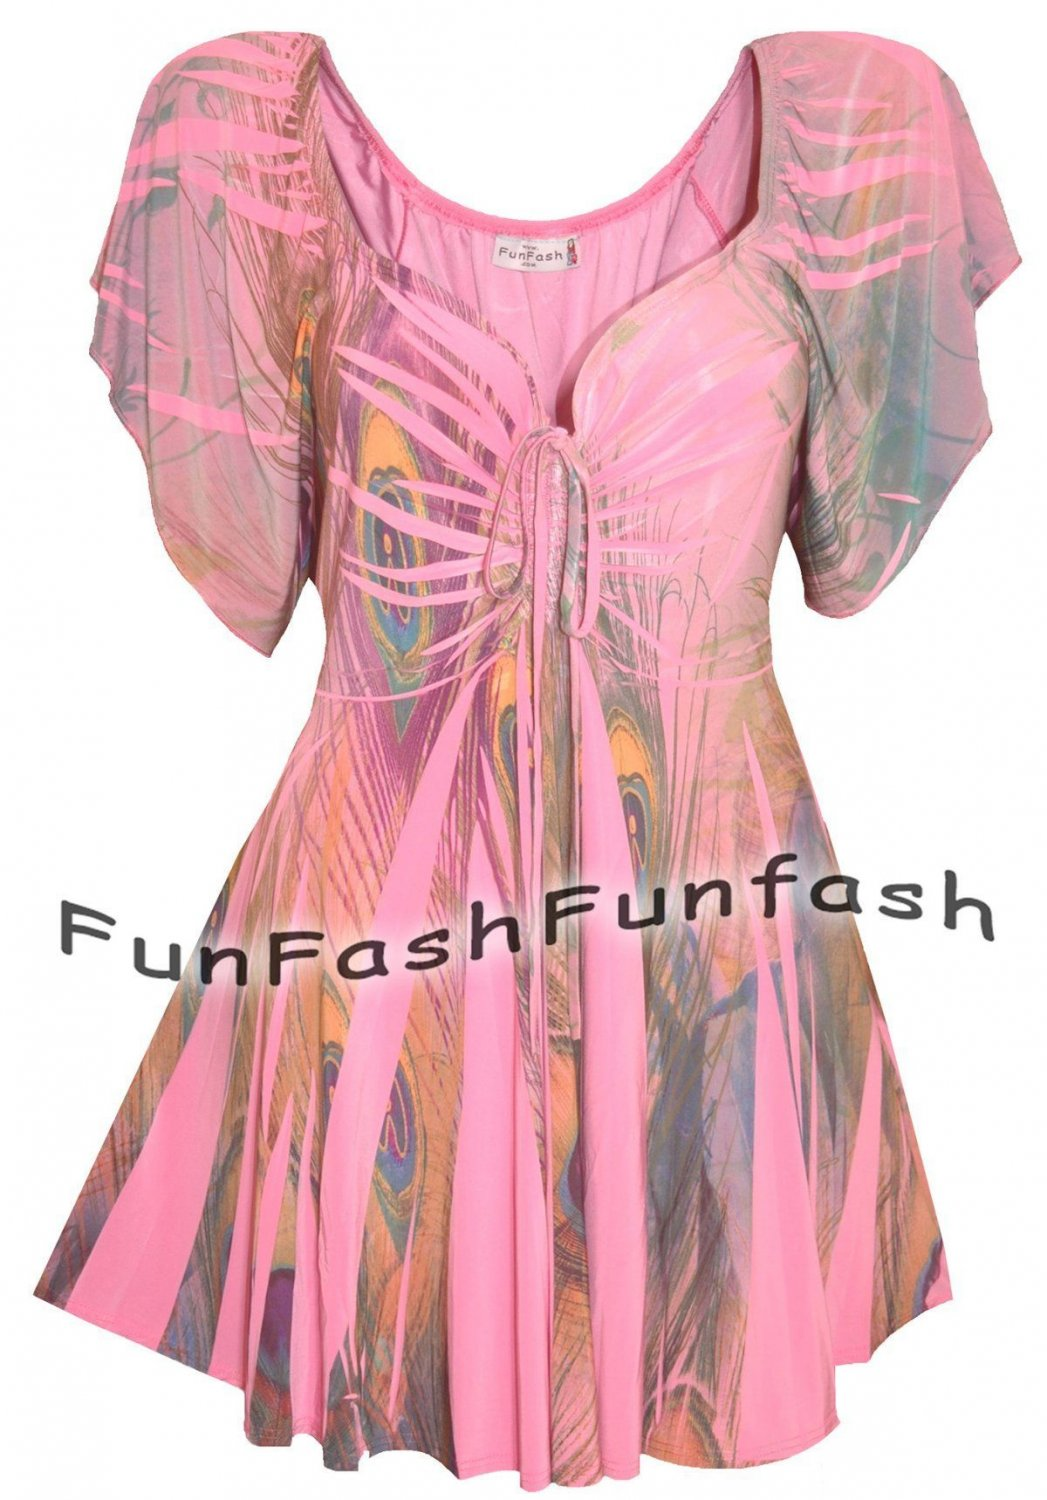 HE9 FUNFASH WOMENS TOP PINK PEACOCK EMPIRE WAIST SHIRT BLOUSE Size LARGE 9 11